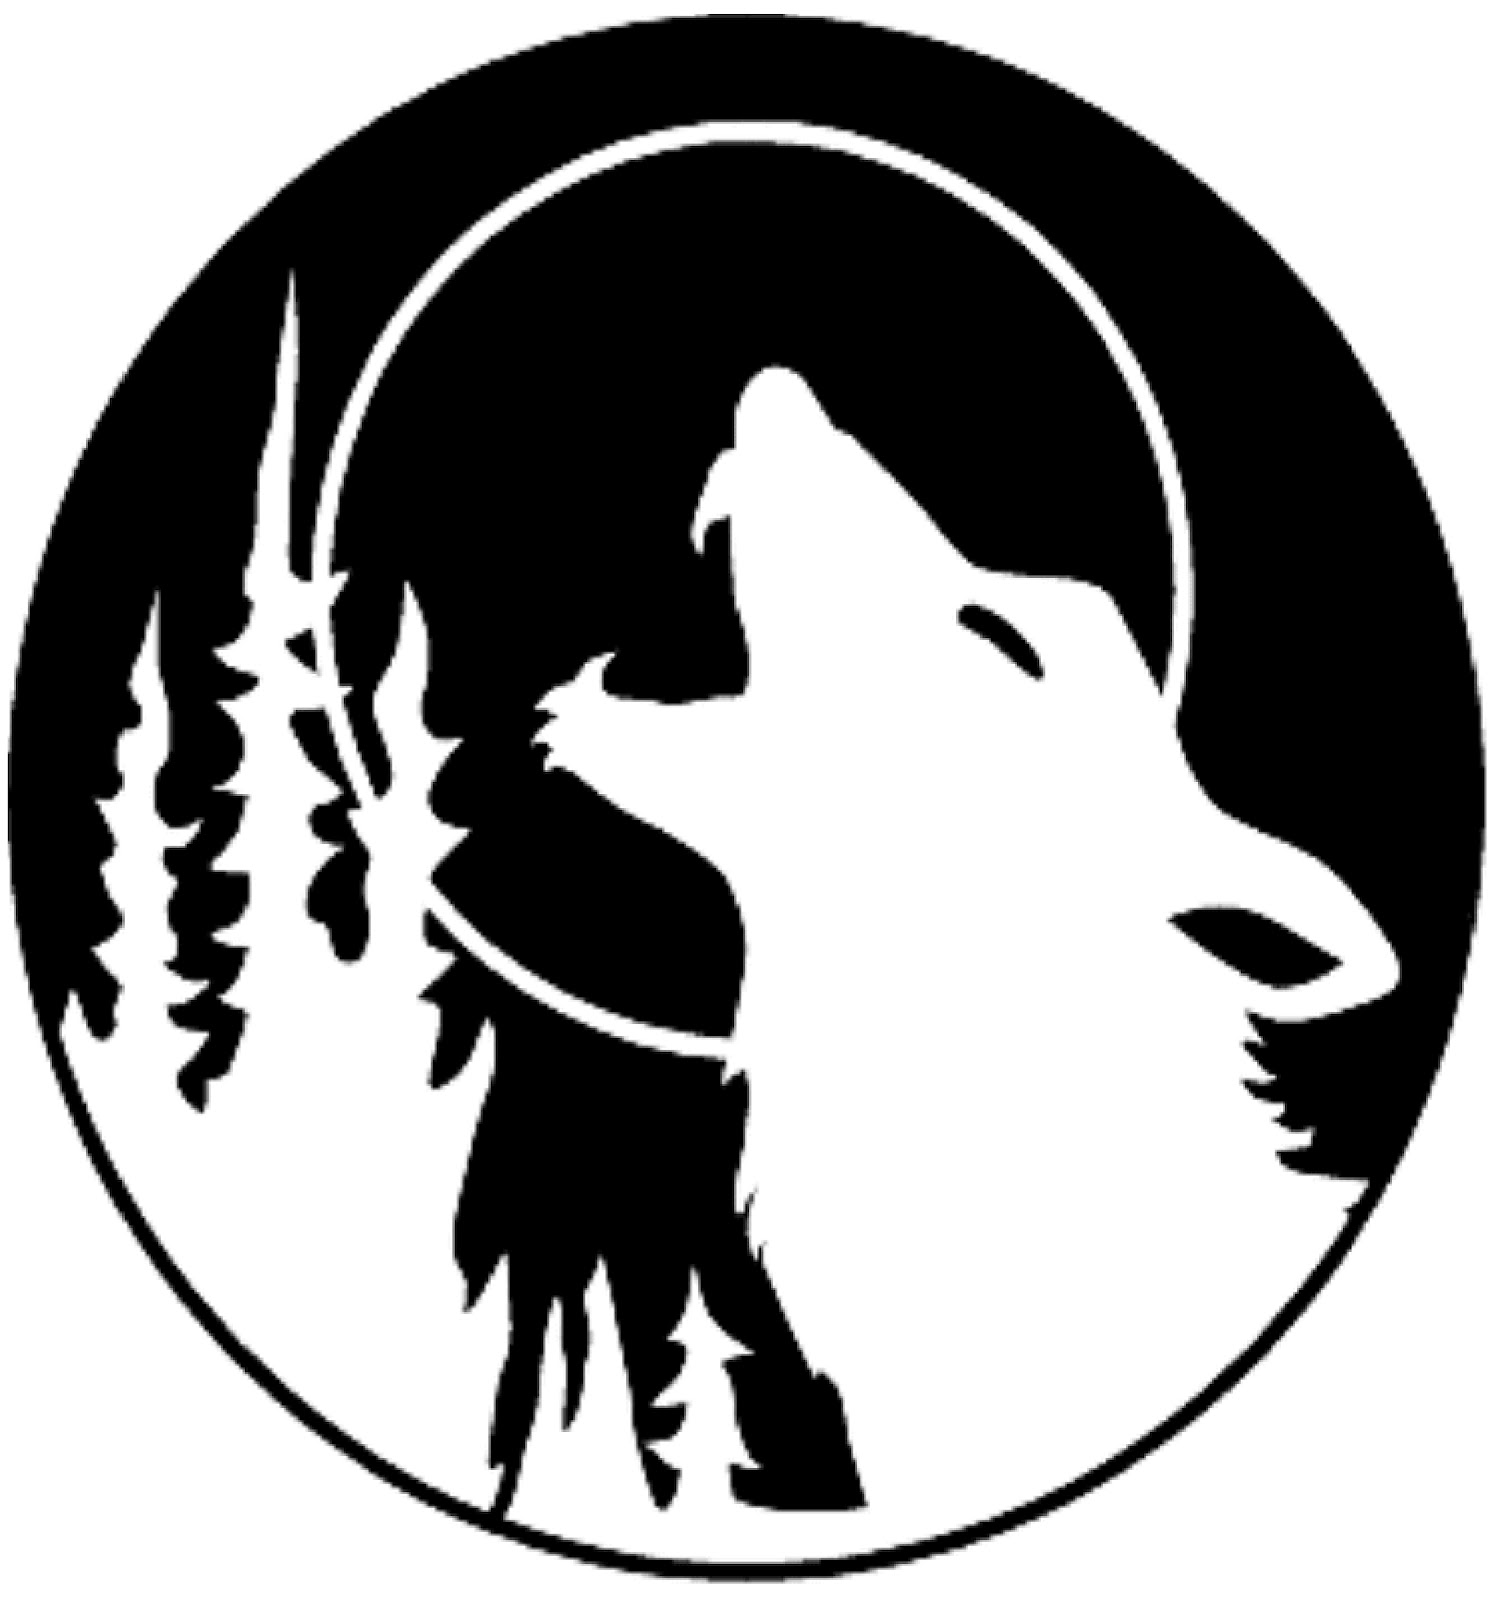 Howling Wolf Outline - Clipart .